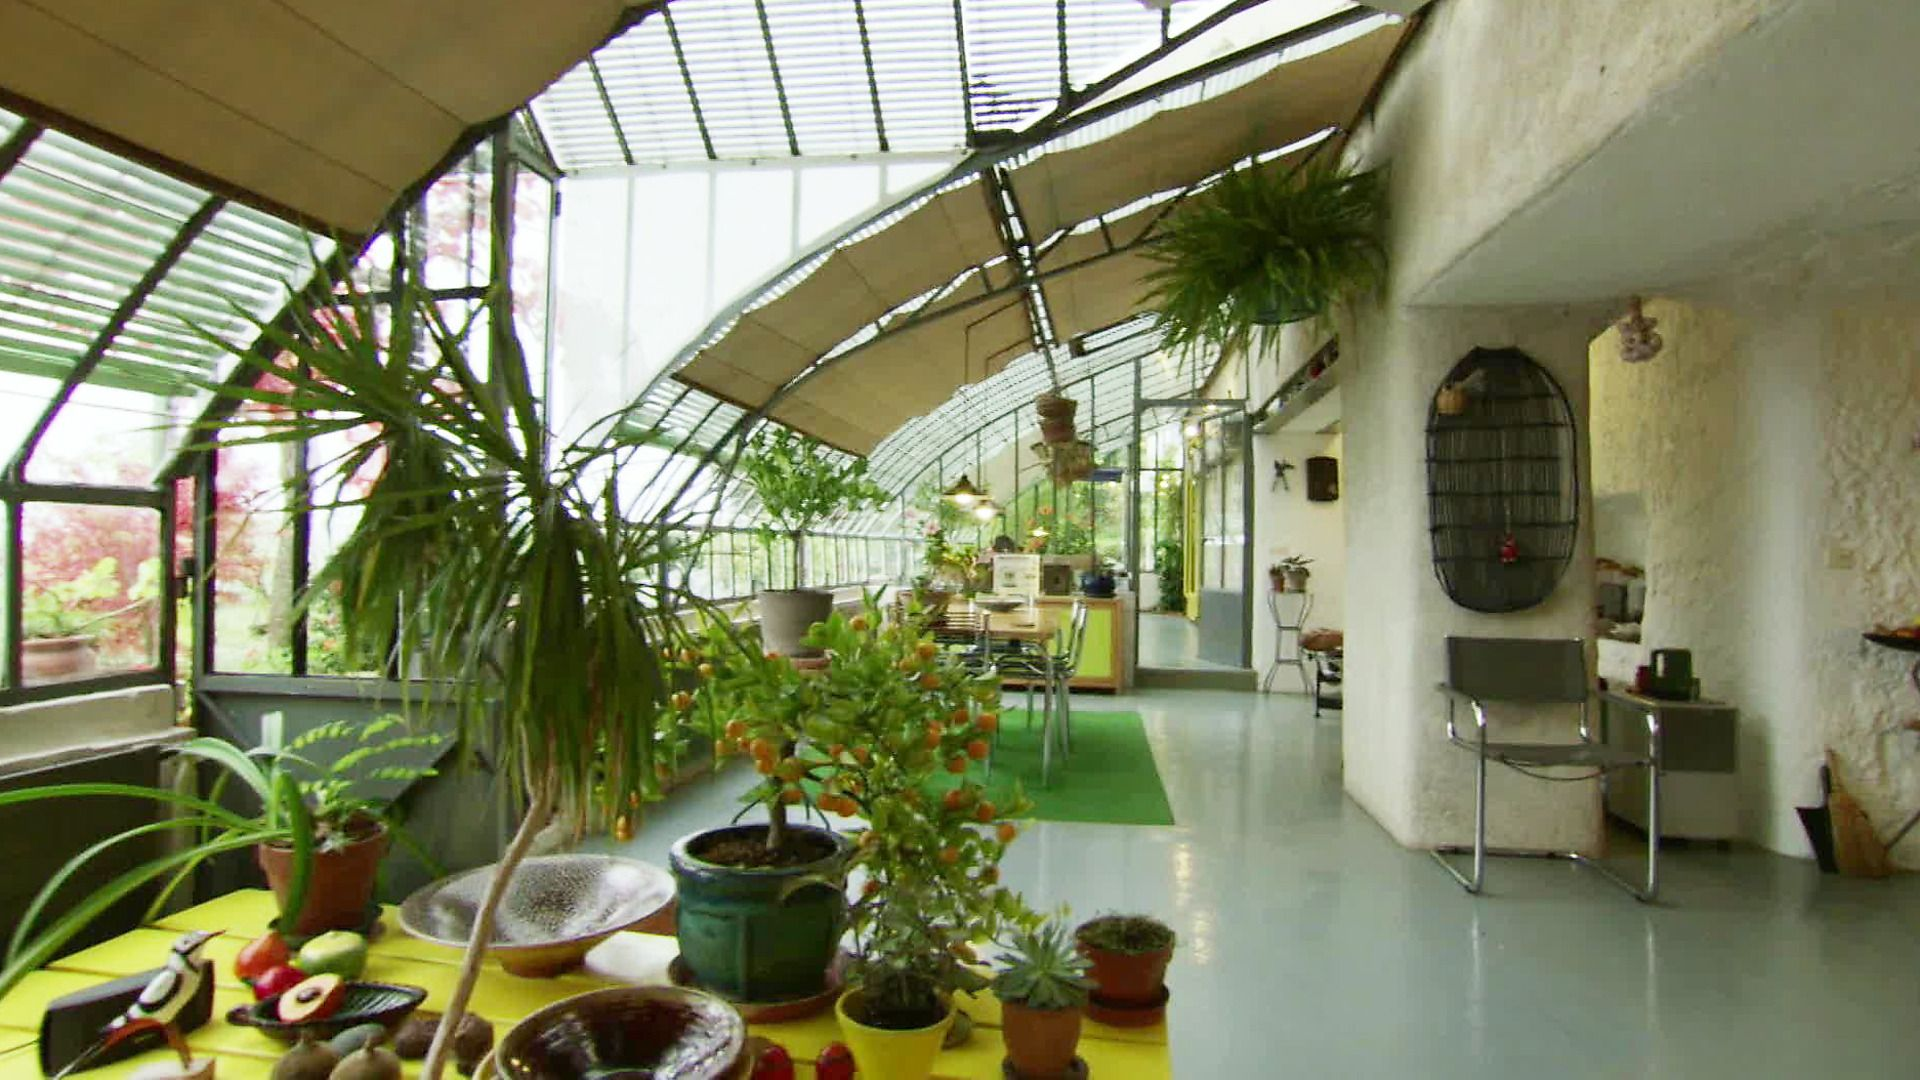 Merveilleux Image Result For Living In A Greenhouse